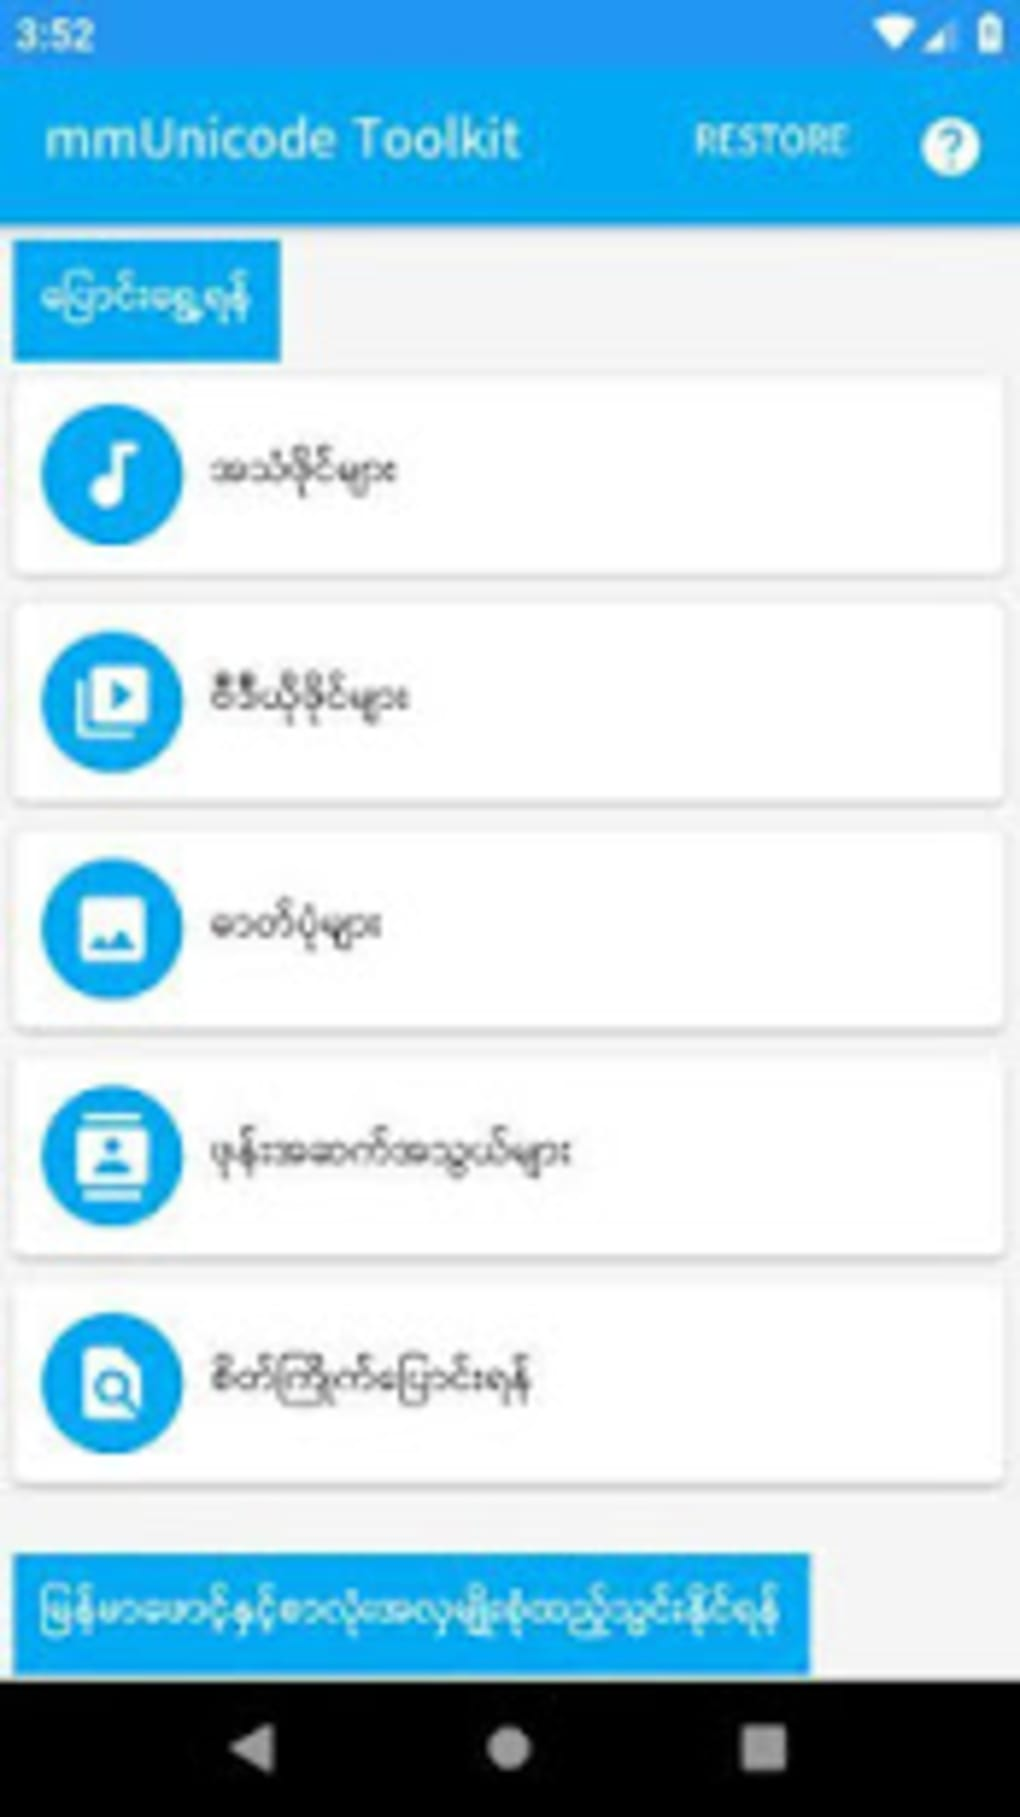 mmUniToolkit - Myanmar Unicode Toolkit for Android - Download